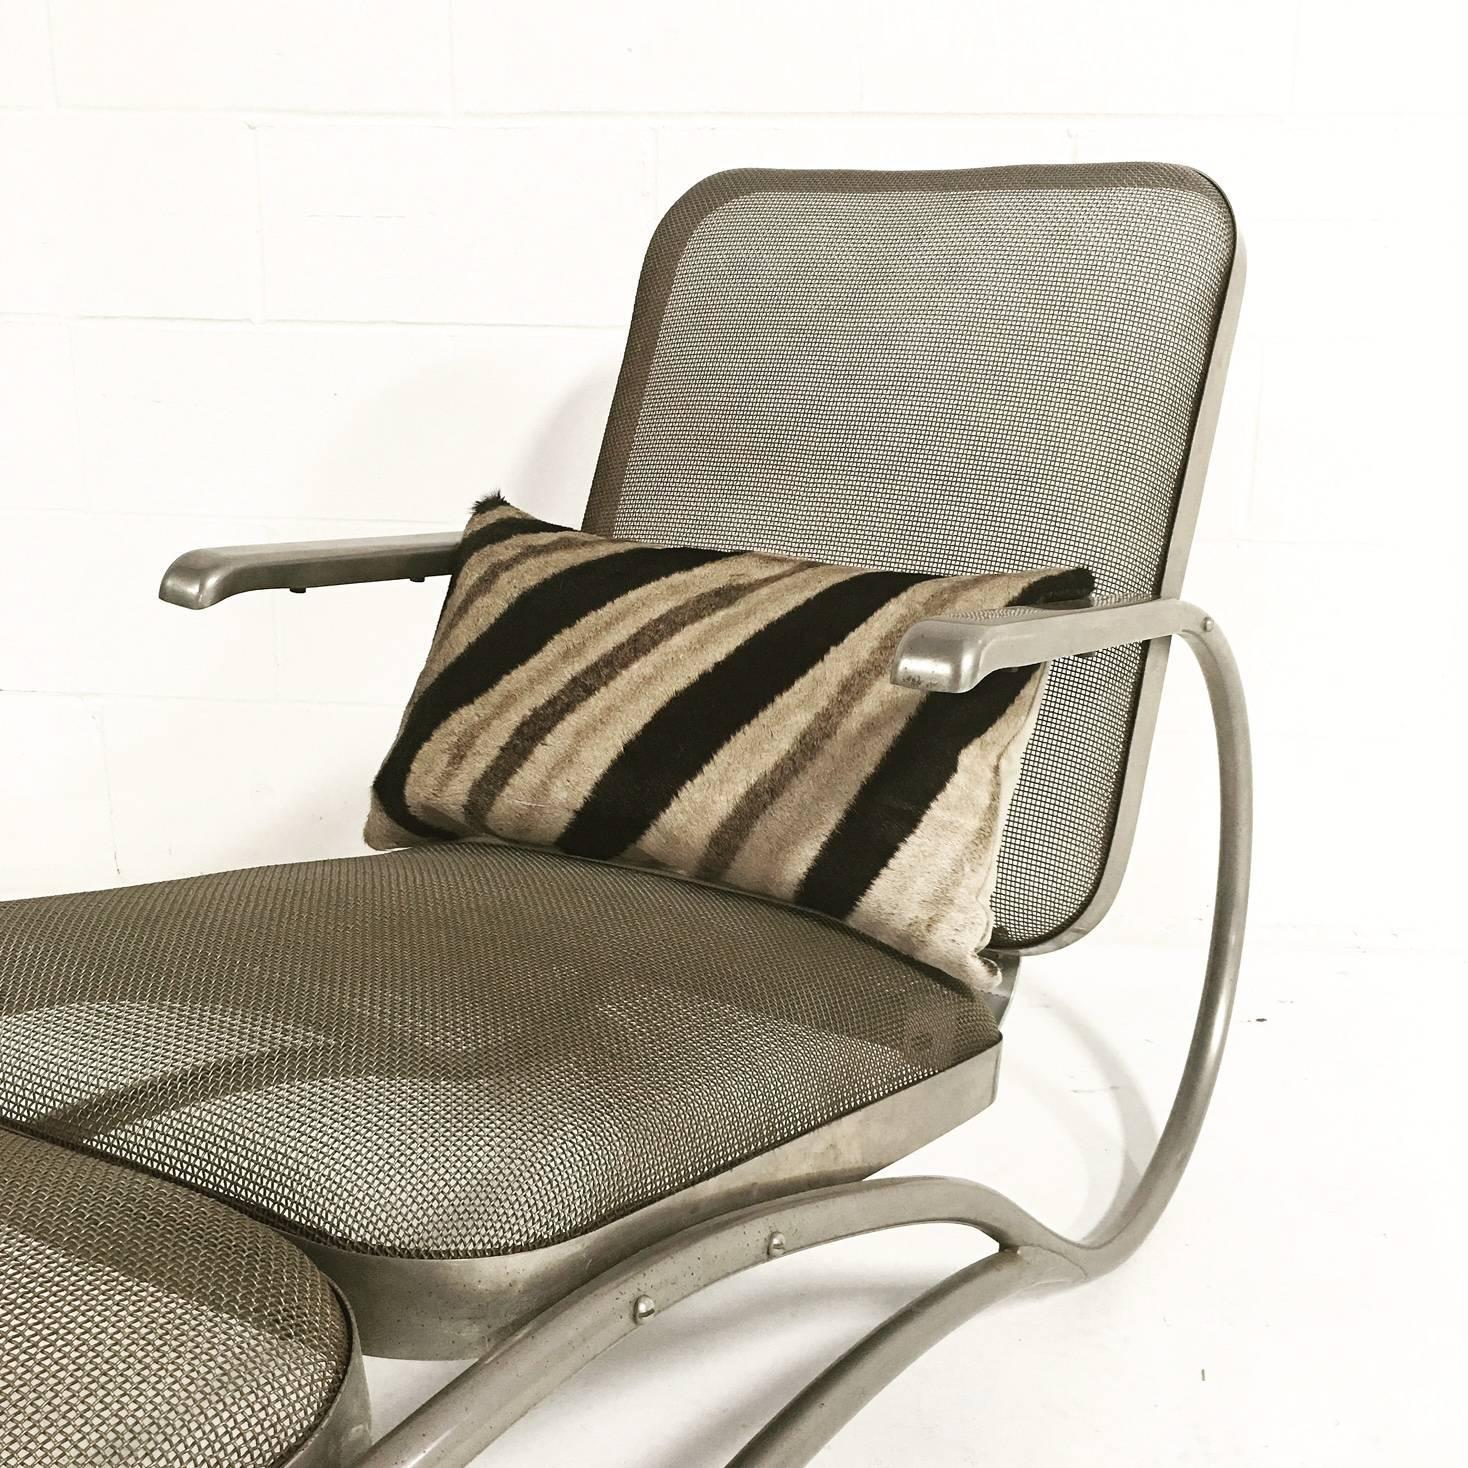 vintage iron mesh chaise lounge with zebra and cowhide pillows for sale at 1stdibs. Black Bedroom Furniture Sets. Home Design Ideas